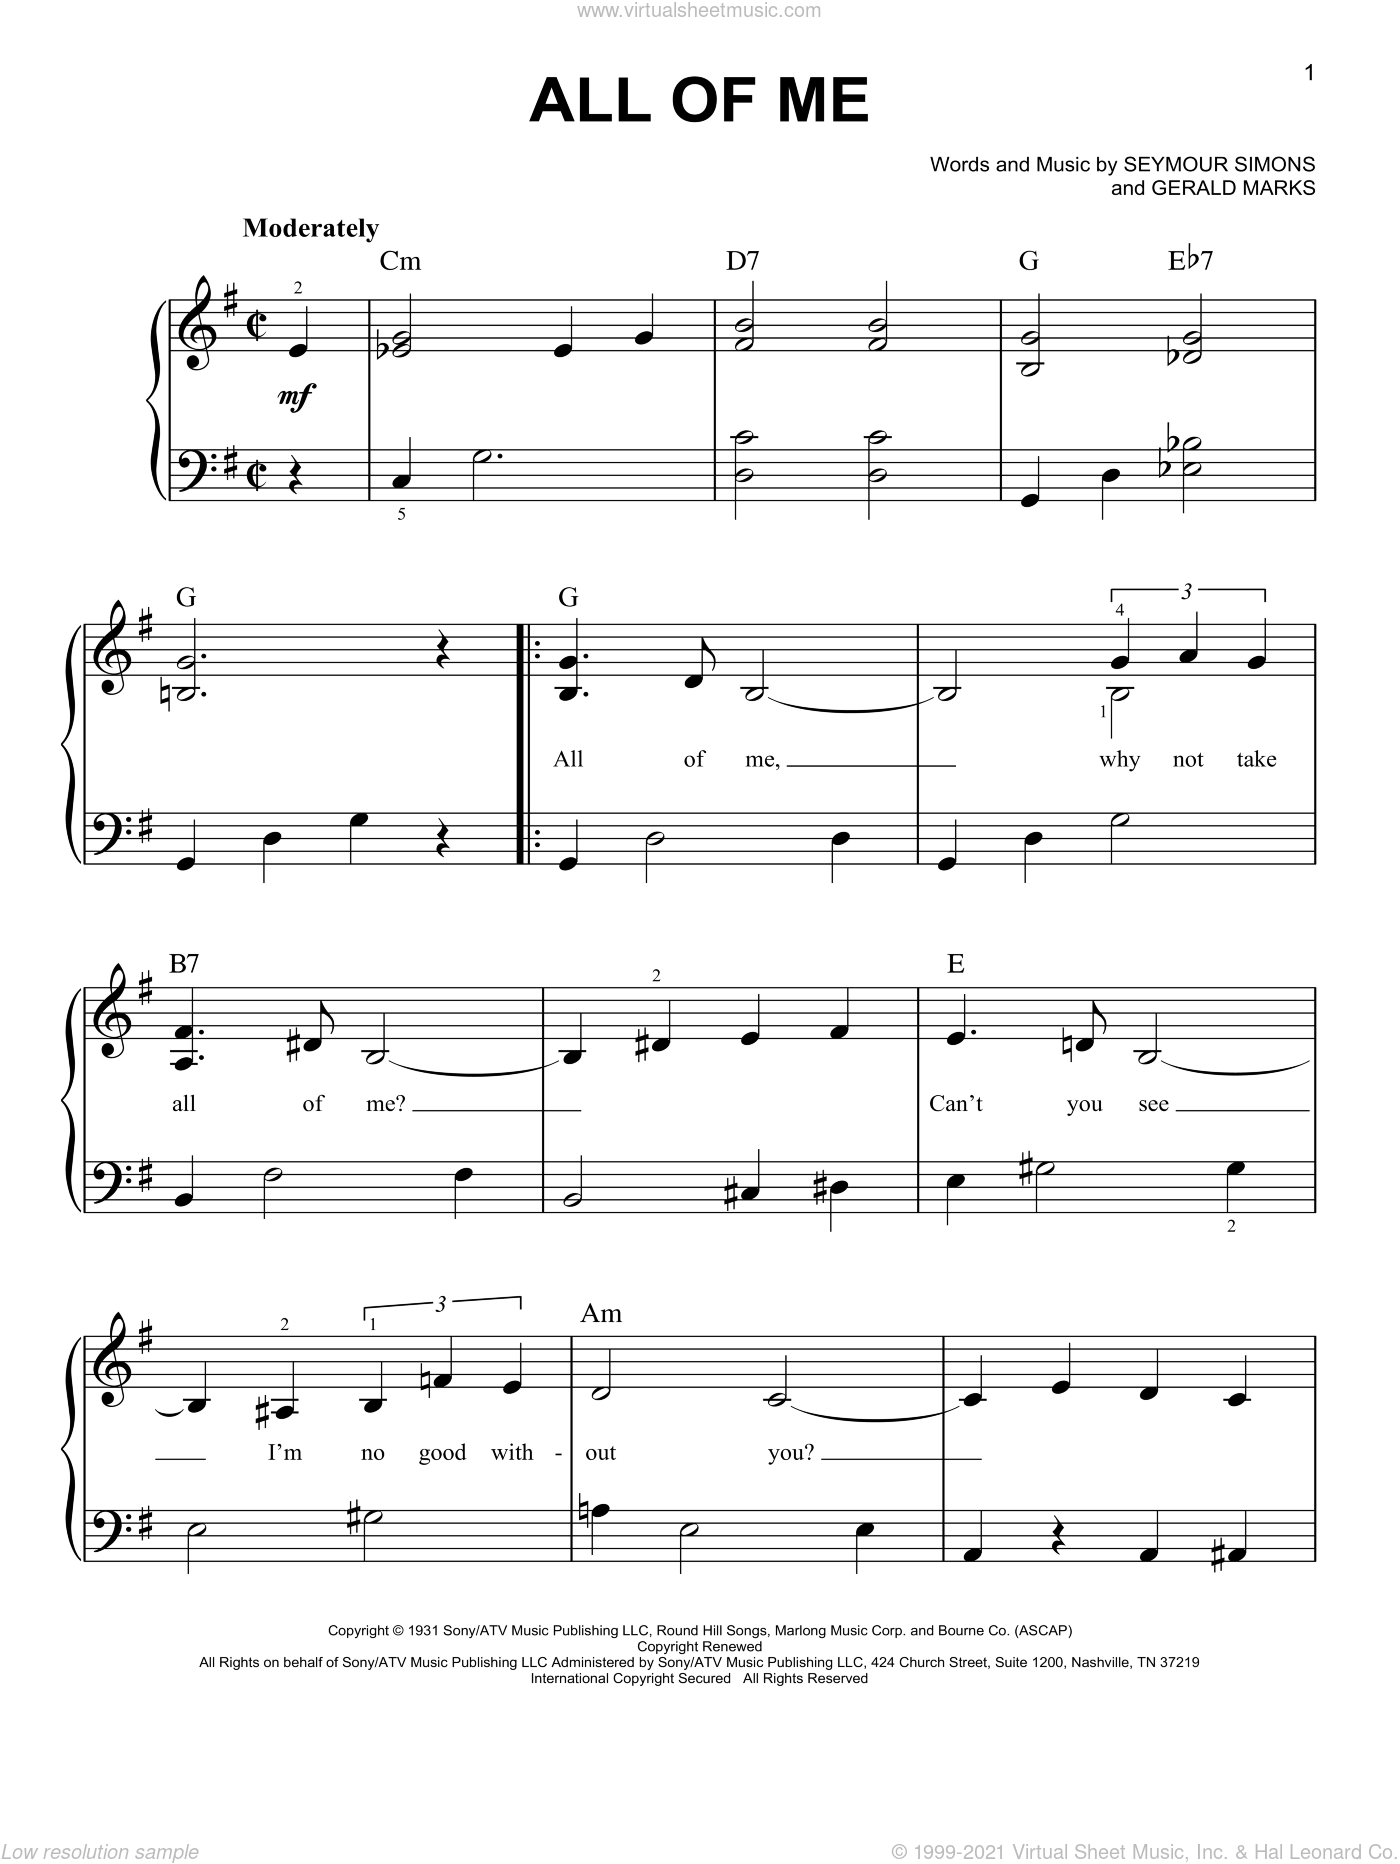 All Of Me sheet music for piano solo by Louis Armstrong, Frank Sinatra, Willie Nelson, Gerald Marks and Seymour Simons, easy. Score Image Preview.